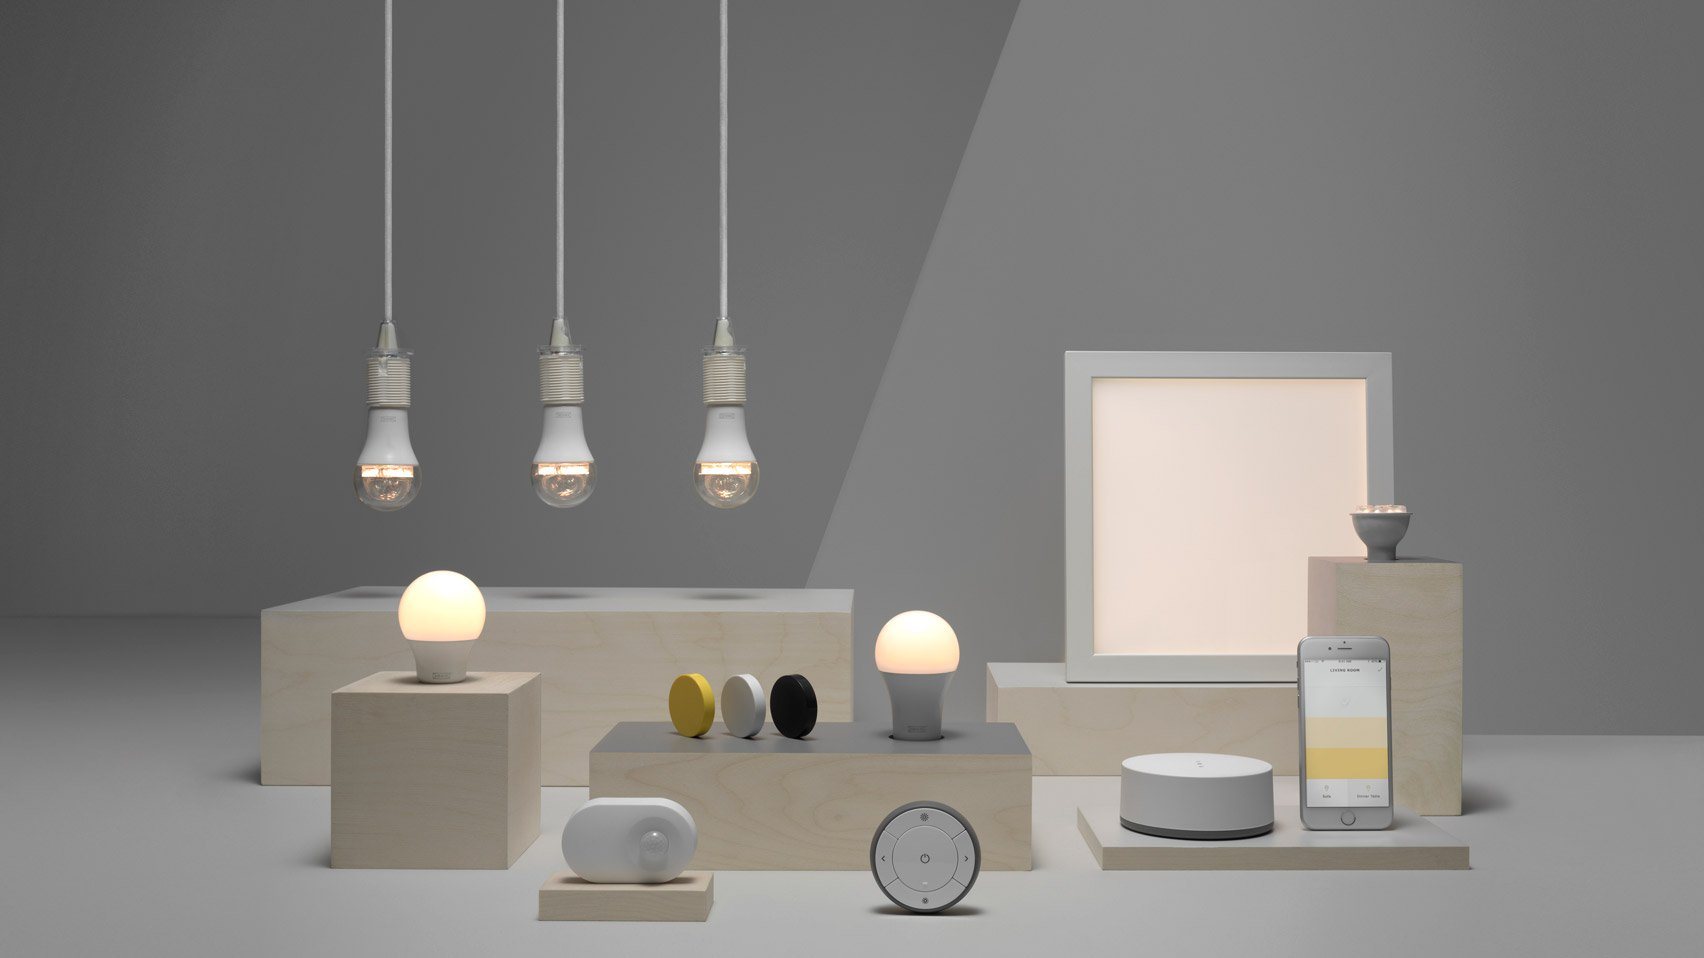 ikea tr dfri smart lights will get support for assistant. Black Bedroom Furniture Sets. Home Design Ideas